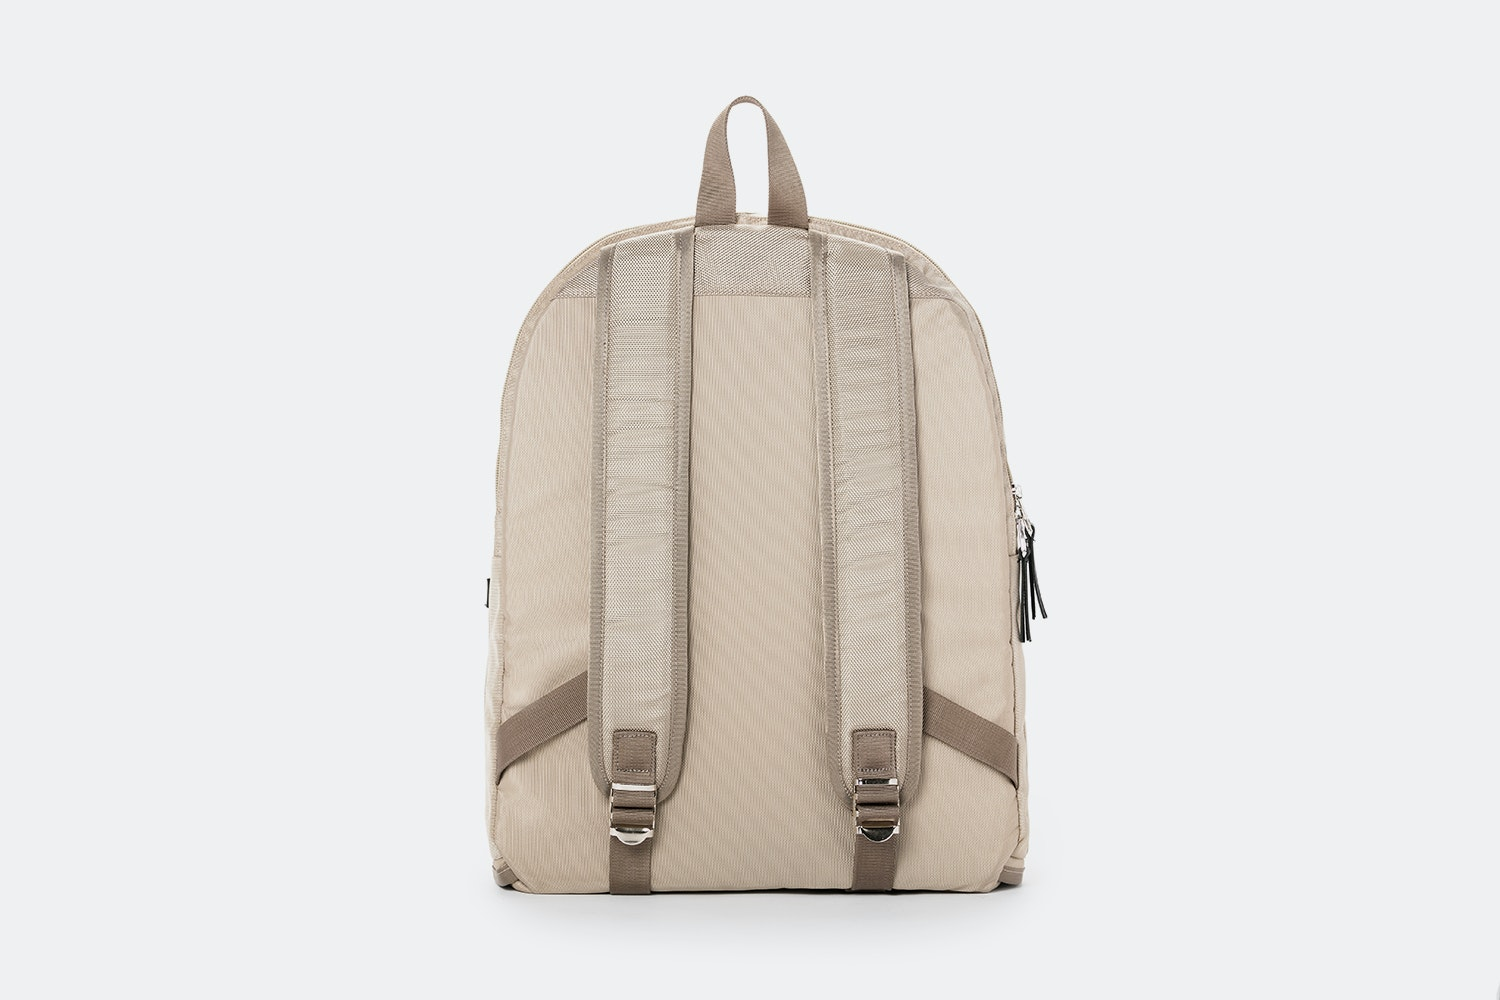 Taikan Everything Spartan Backpack